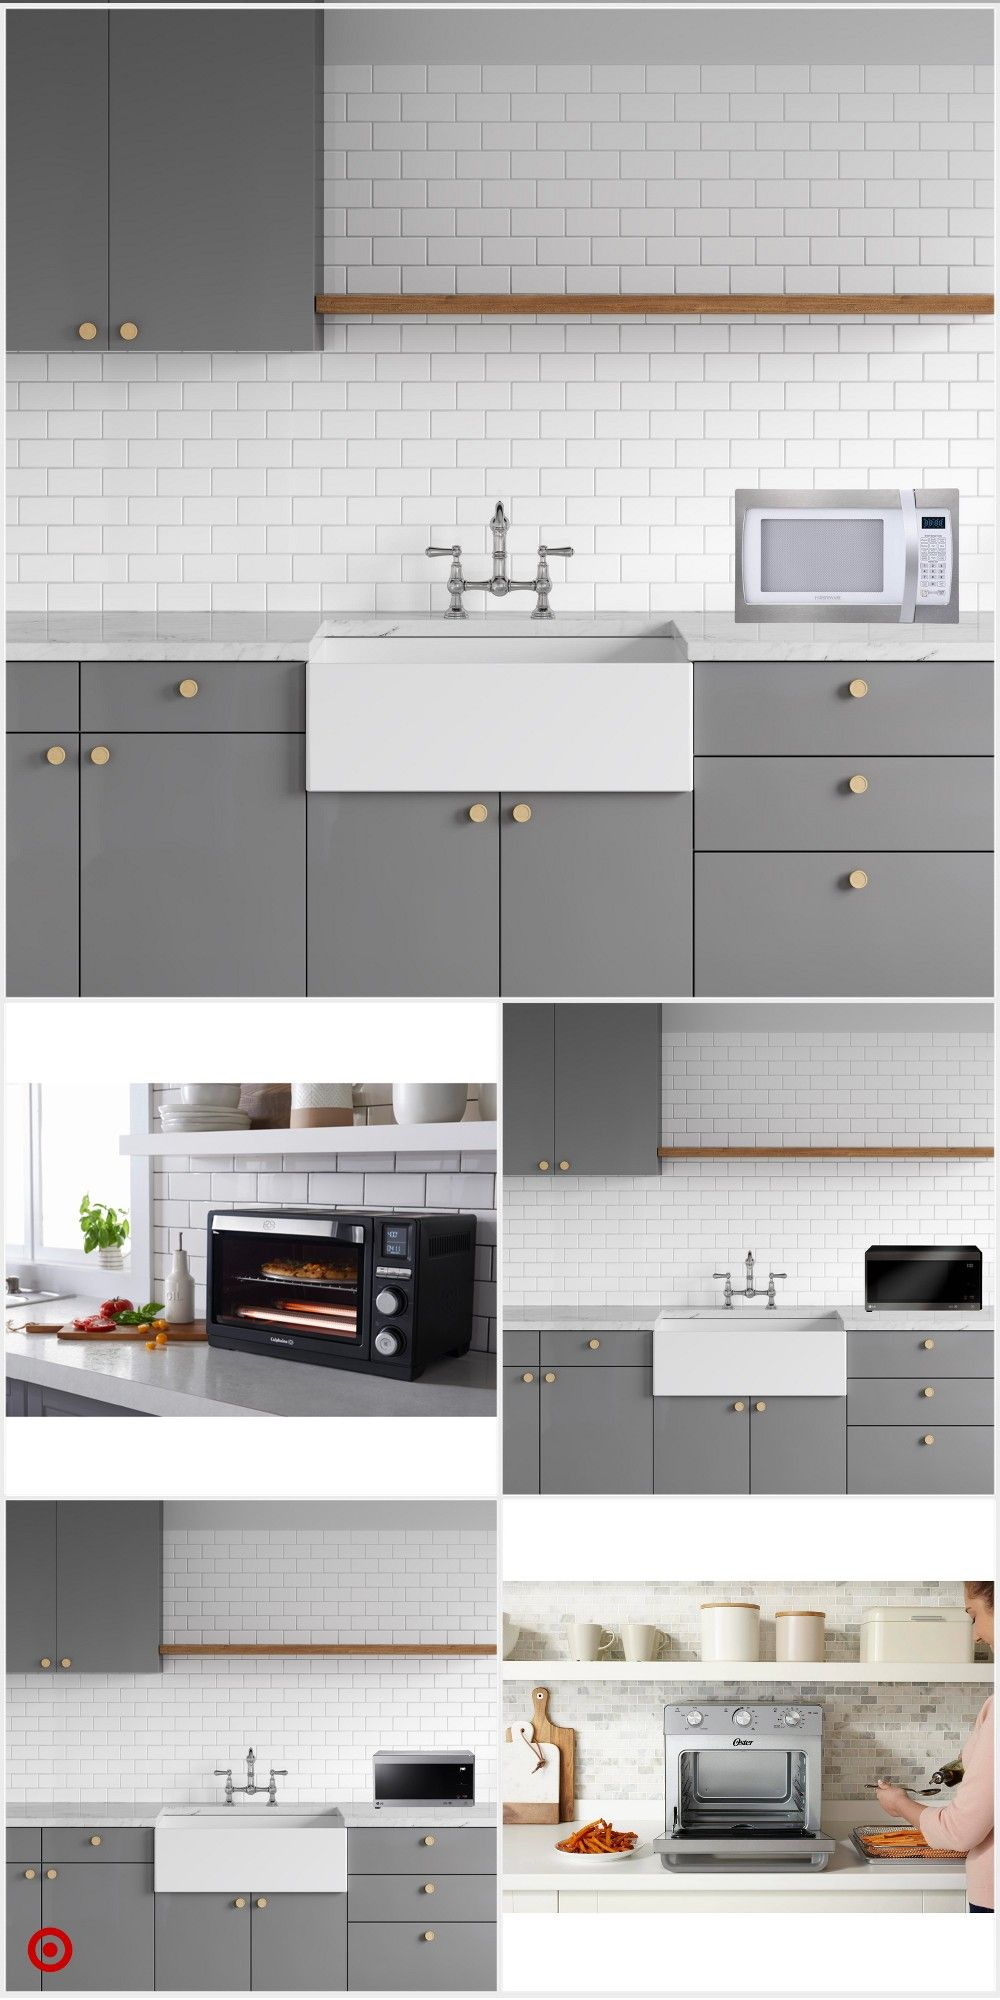 Shop Target For Countertop Ovens You Will Love At Great Low Prices Free Shipping On Kitchen Design Centre Interior Design Kitchen Small Kitchen Remodel Small